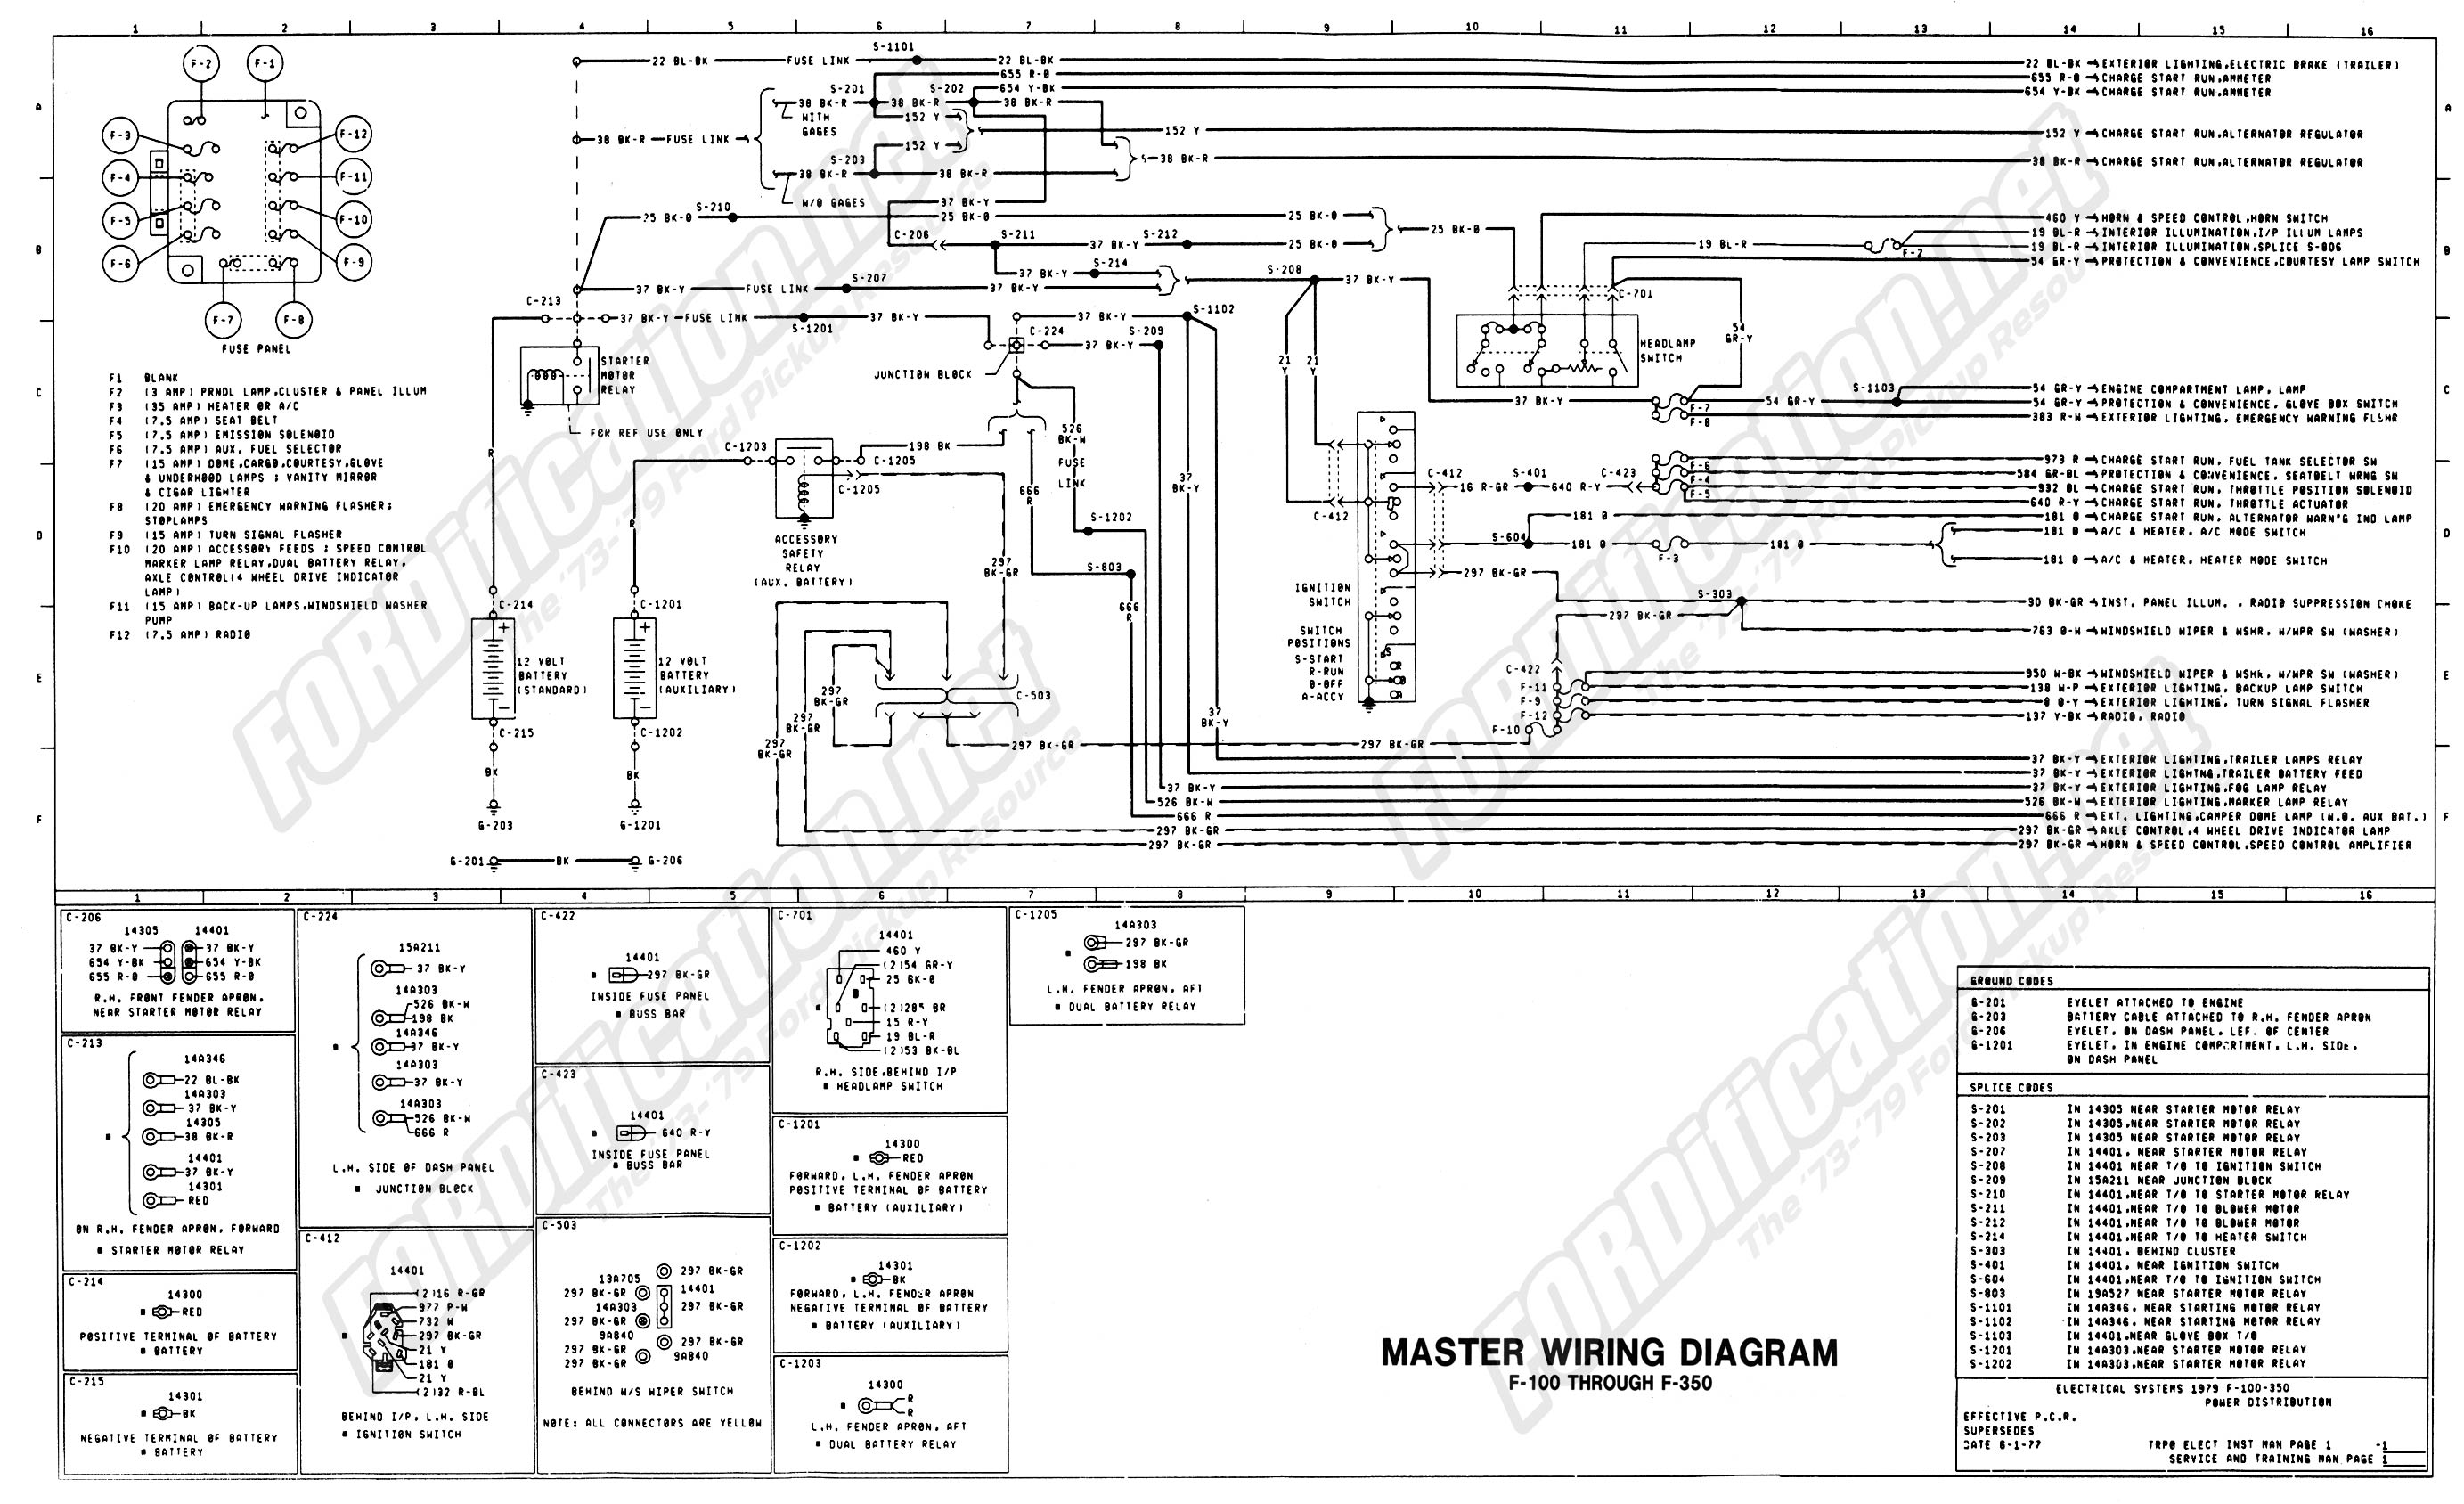 wiring_79master_1of9 1973 1979 ford truck wiring diagrams & schematics fordification net 1979 ford f100 fuse box diagram at gsmportal.co